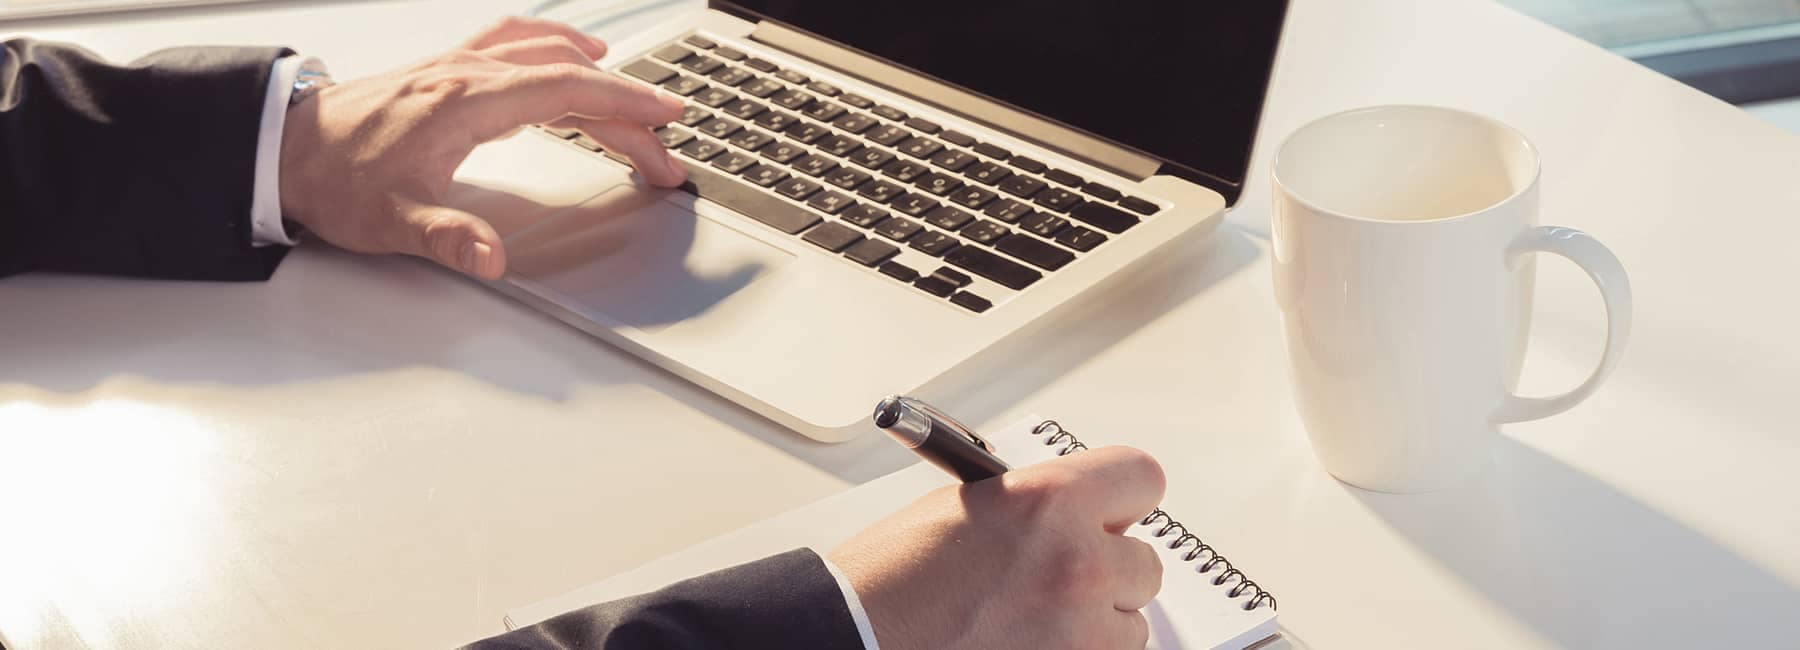 Hand on computer and notepad